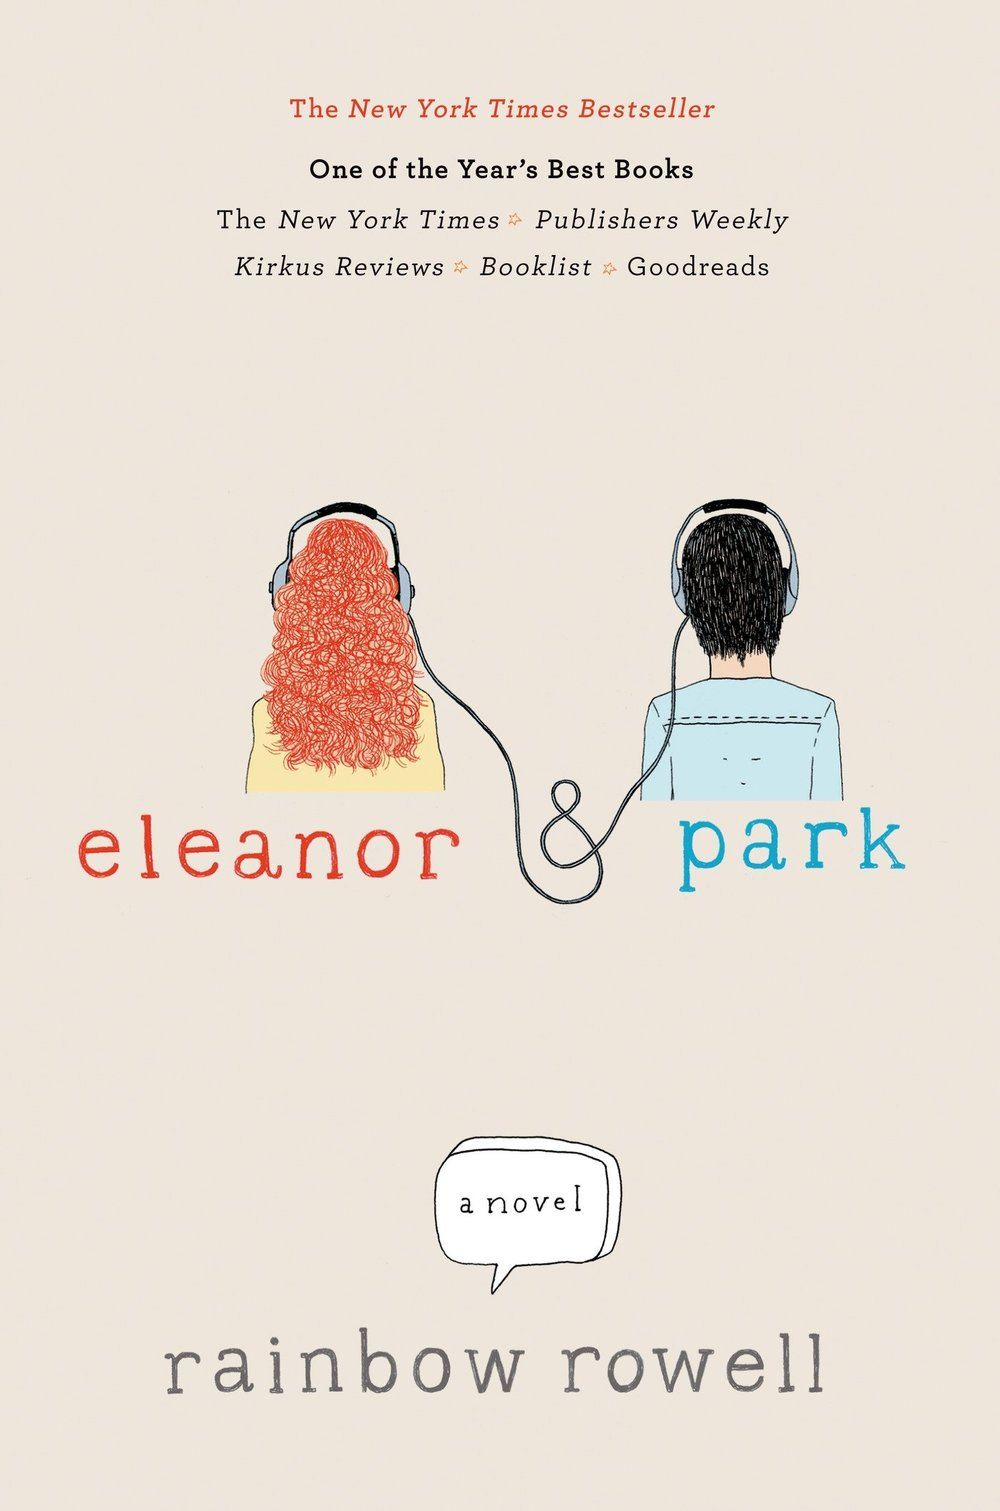 Eleanor & Park  by Rainbow Rowell *  A beautifully written story about young love and it reminds you what it means to be young and so enamored by another person. The love of music, the love of a book connecting two people. P.S I read this in two days.